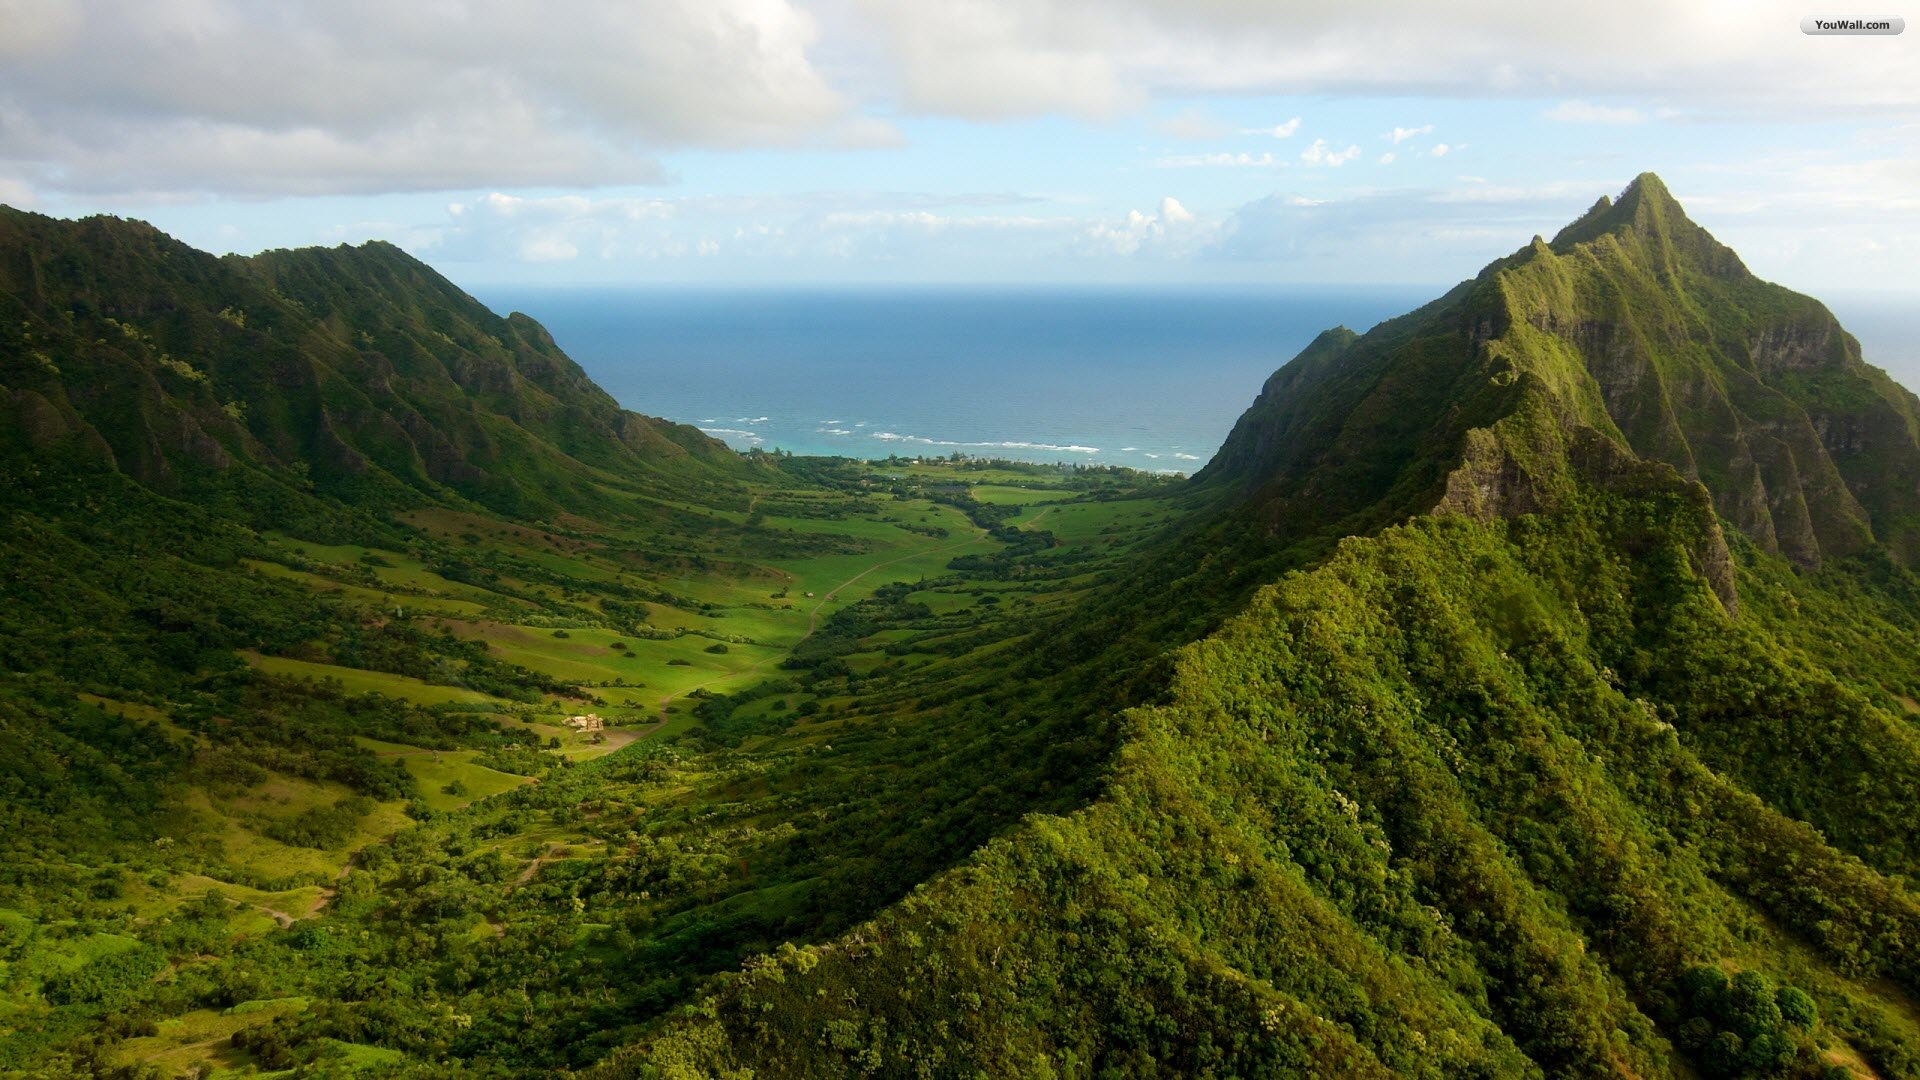 Oahu Green Mountains Wallpaper   wallpaperwallpapersfree wallpaper 1920x1080